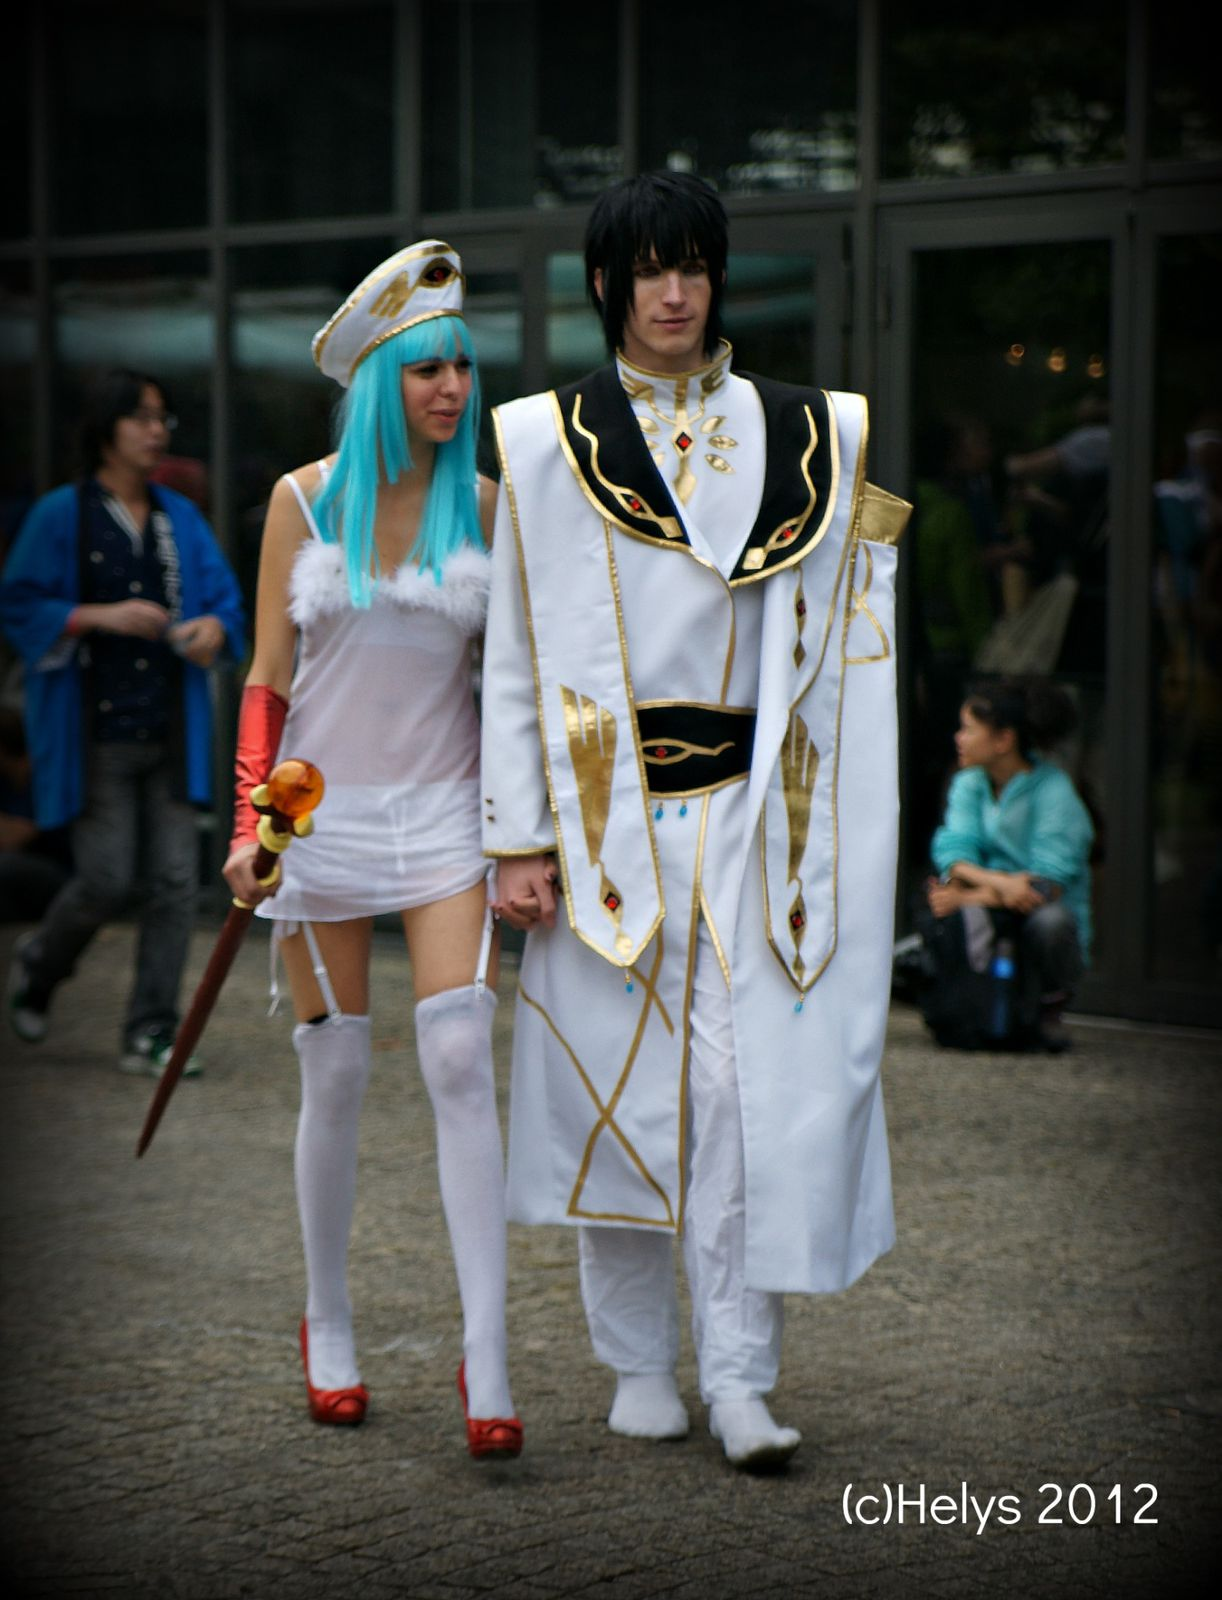 Photo (c)Helys japan expo 2012 ~A SUIVRE~